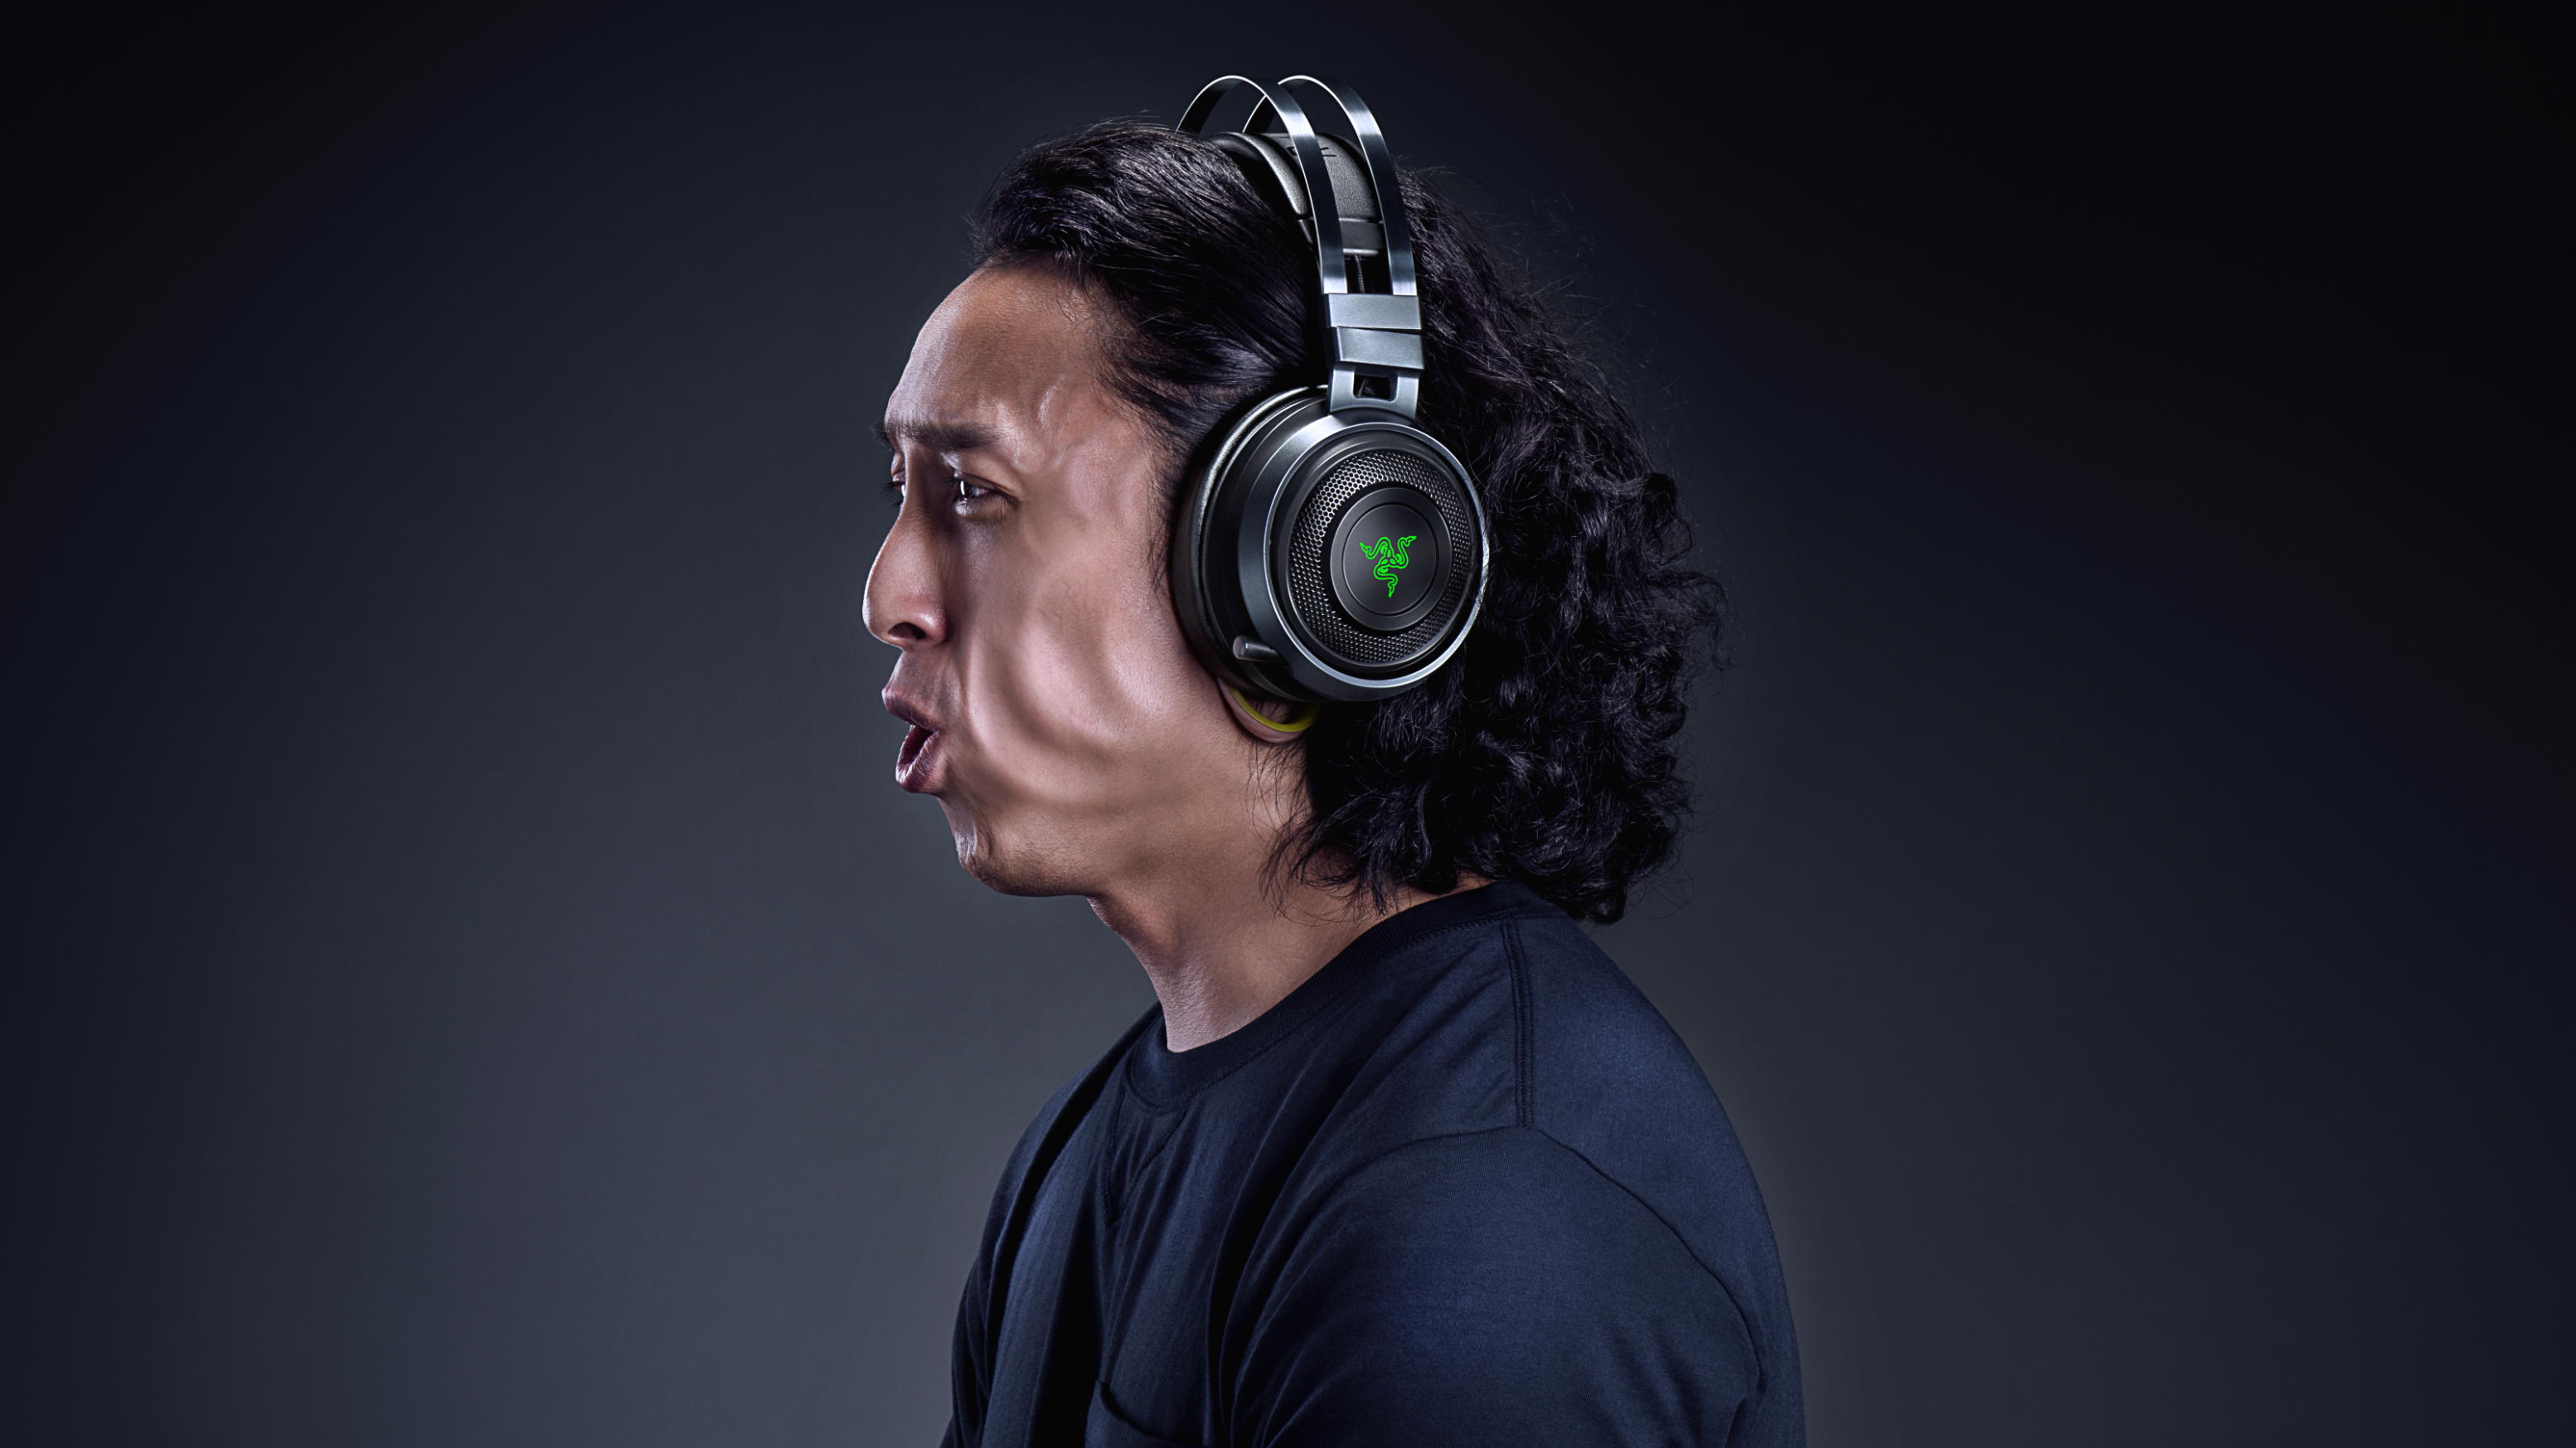 Razer's new Nari Ultimate gaming headset features 'lifelike' haptic feedback